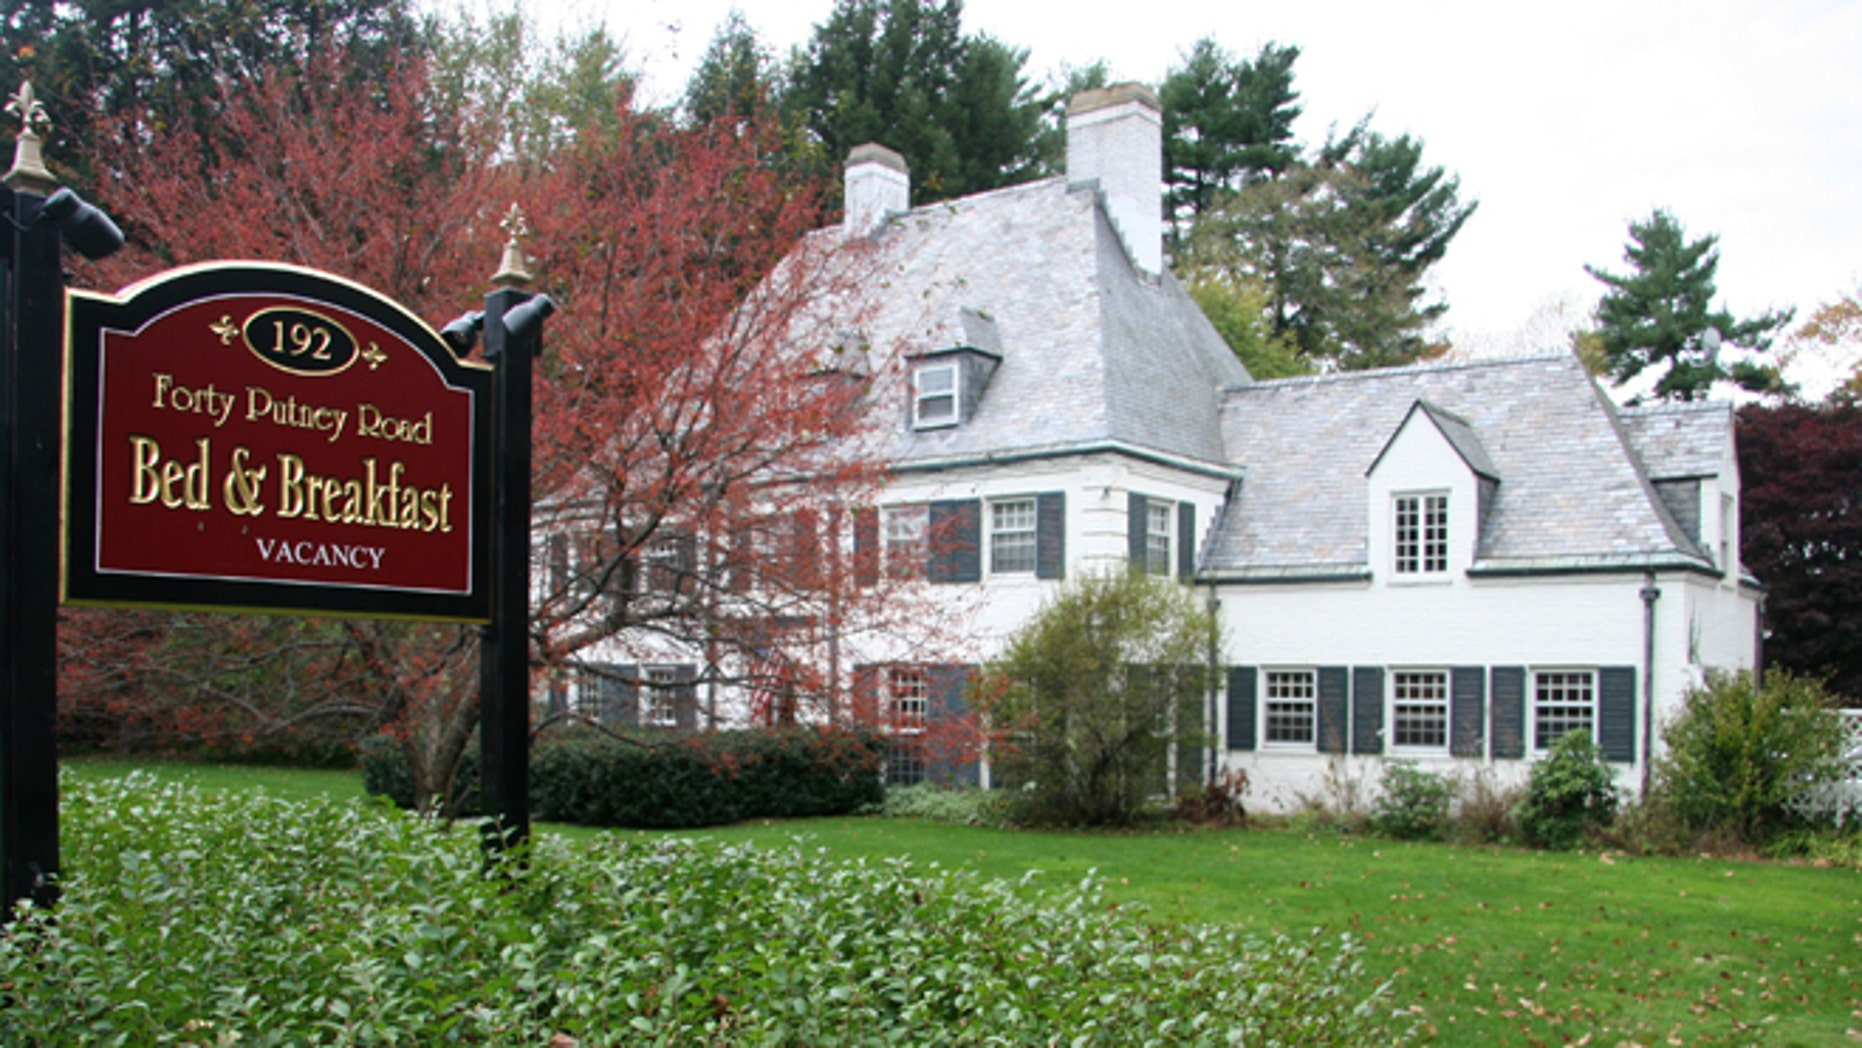 Forty Putney Road Bed and Breakfast is located on land that once belonged to the Vermont Asylum for the Insane.